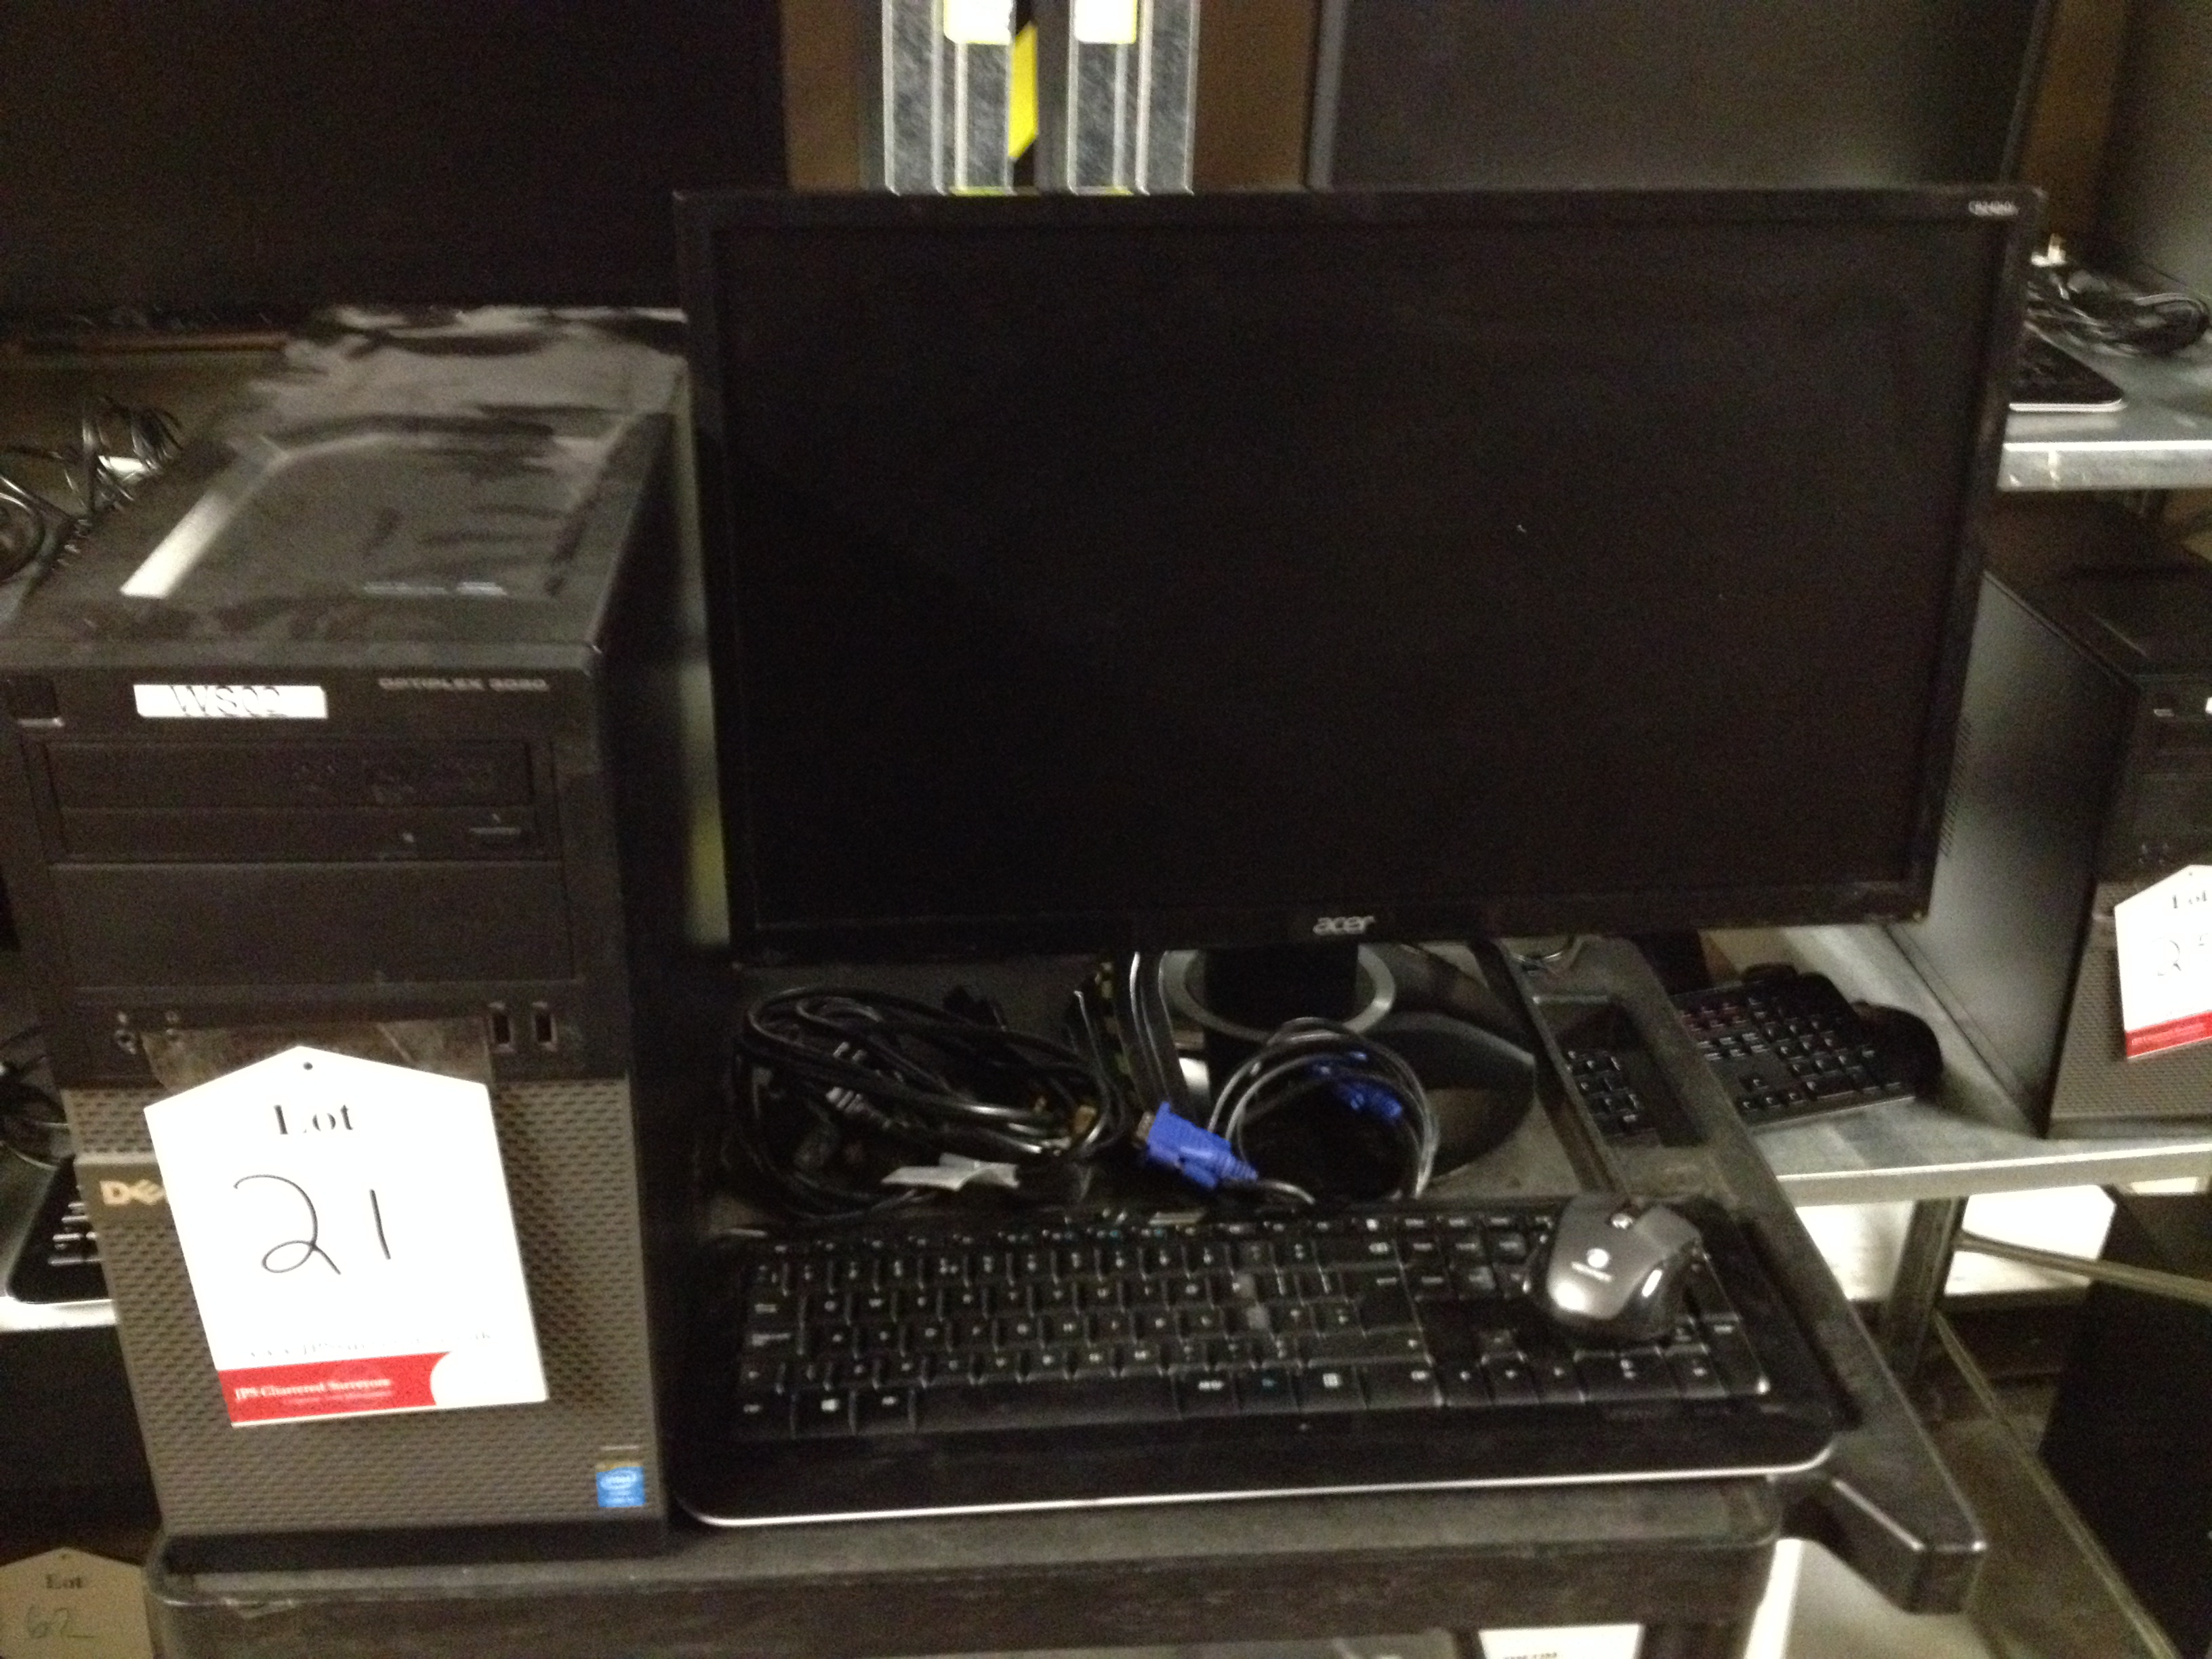 Lot 21 - Dell desktop PC Model: D15M Optiplex3020 with monitor, keyboard and mouse